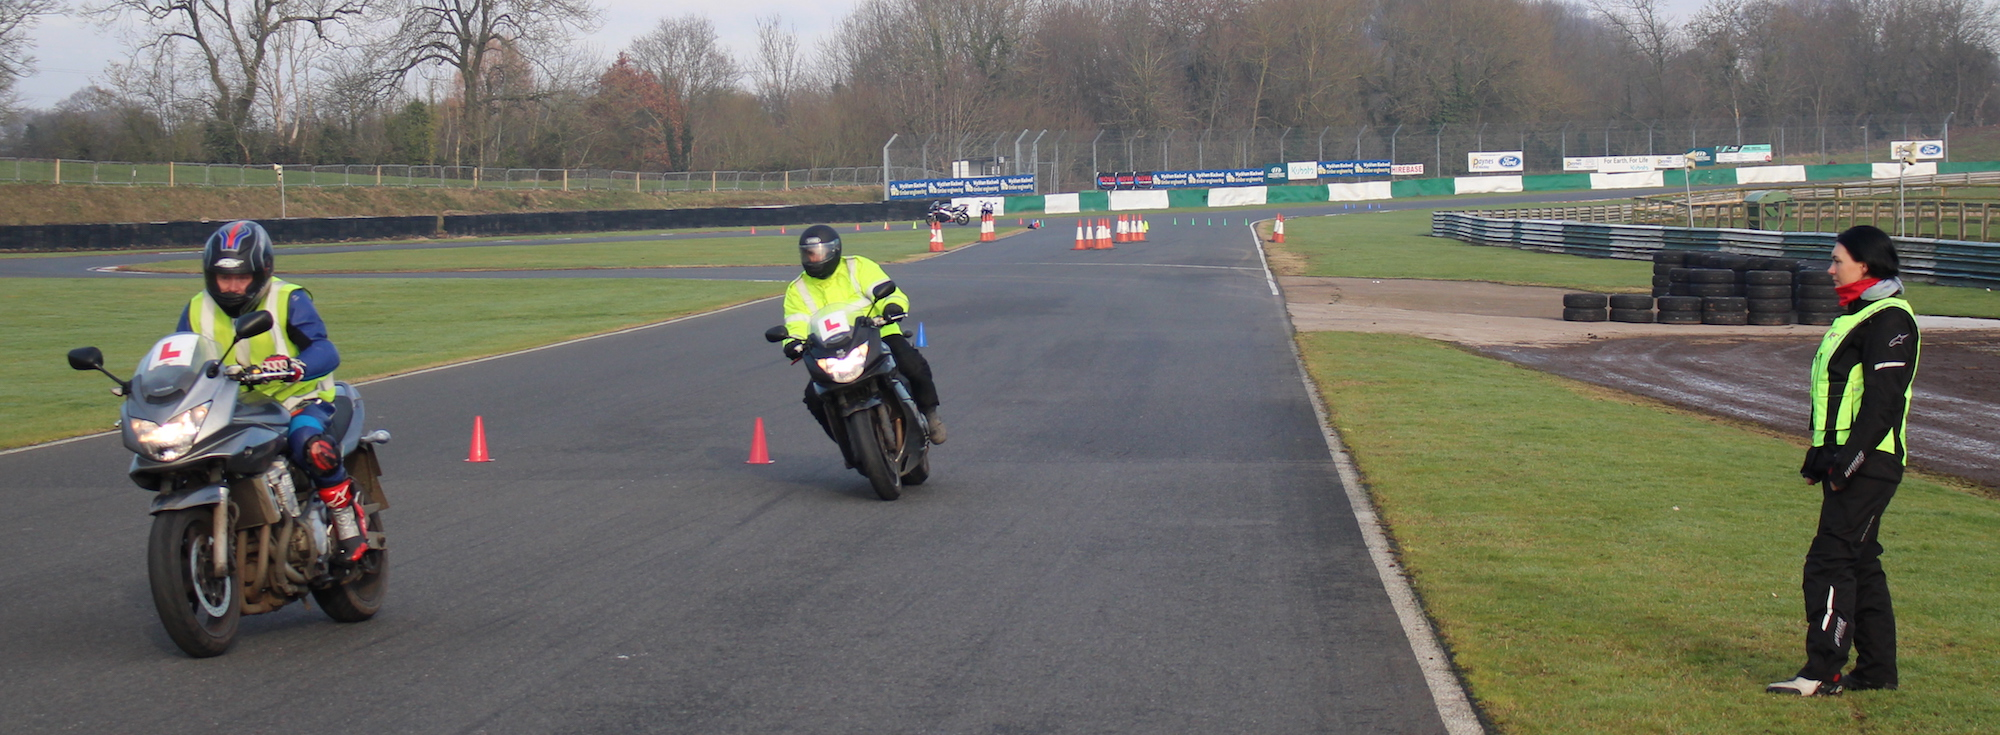 Motorcycle training in Leicester